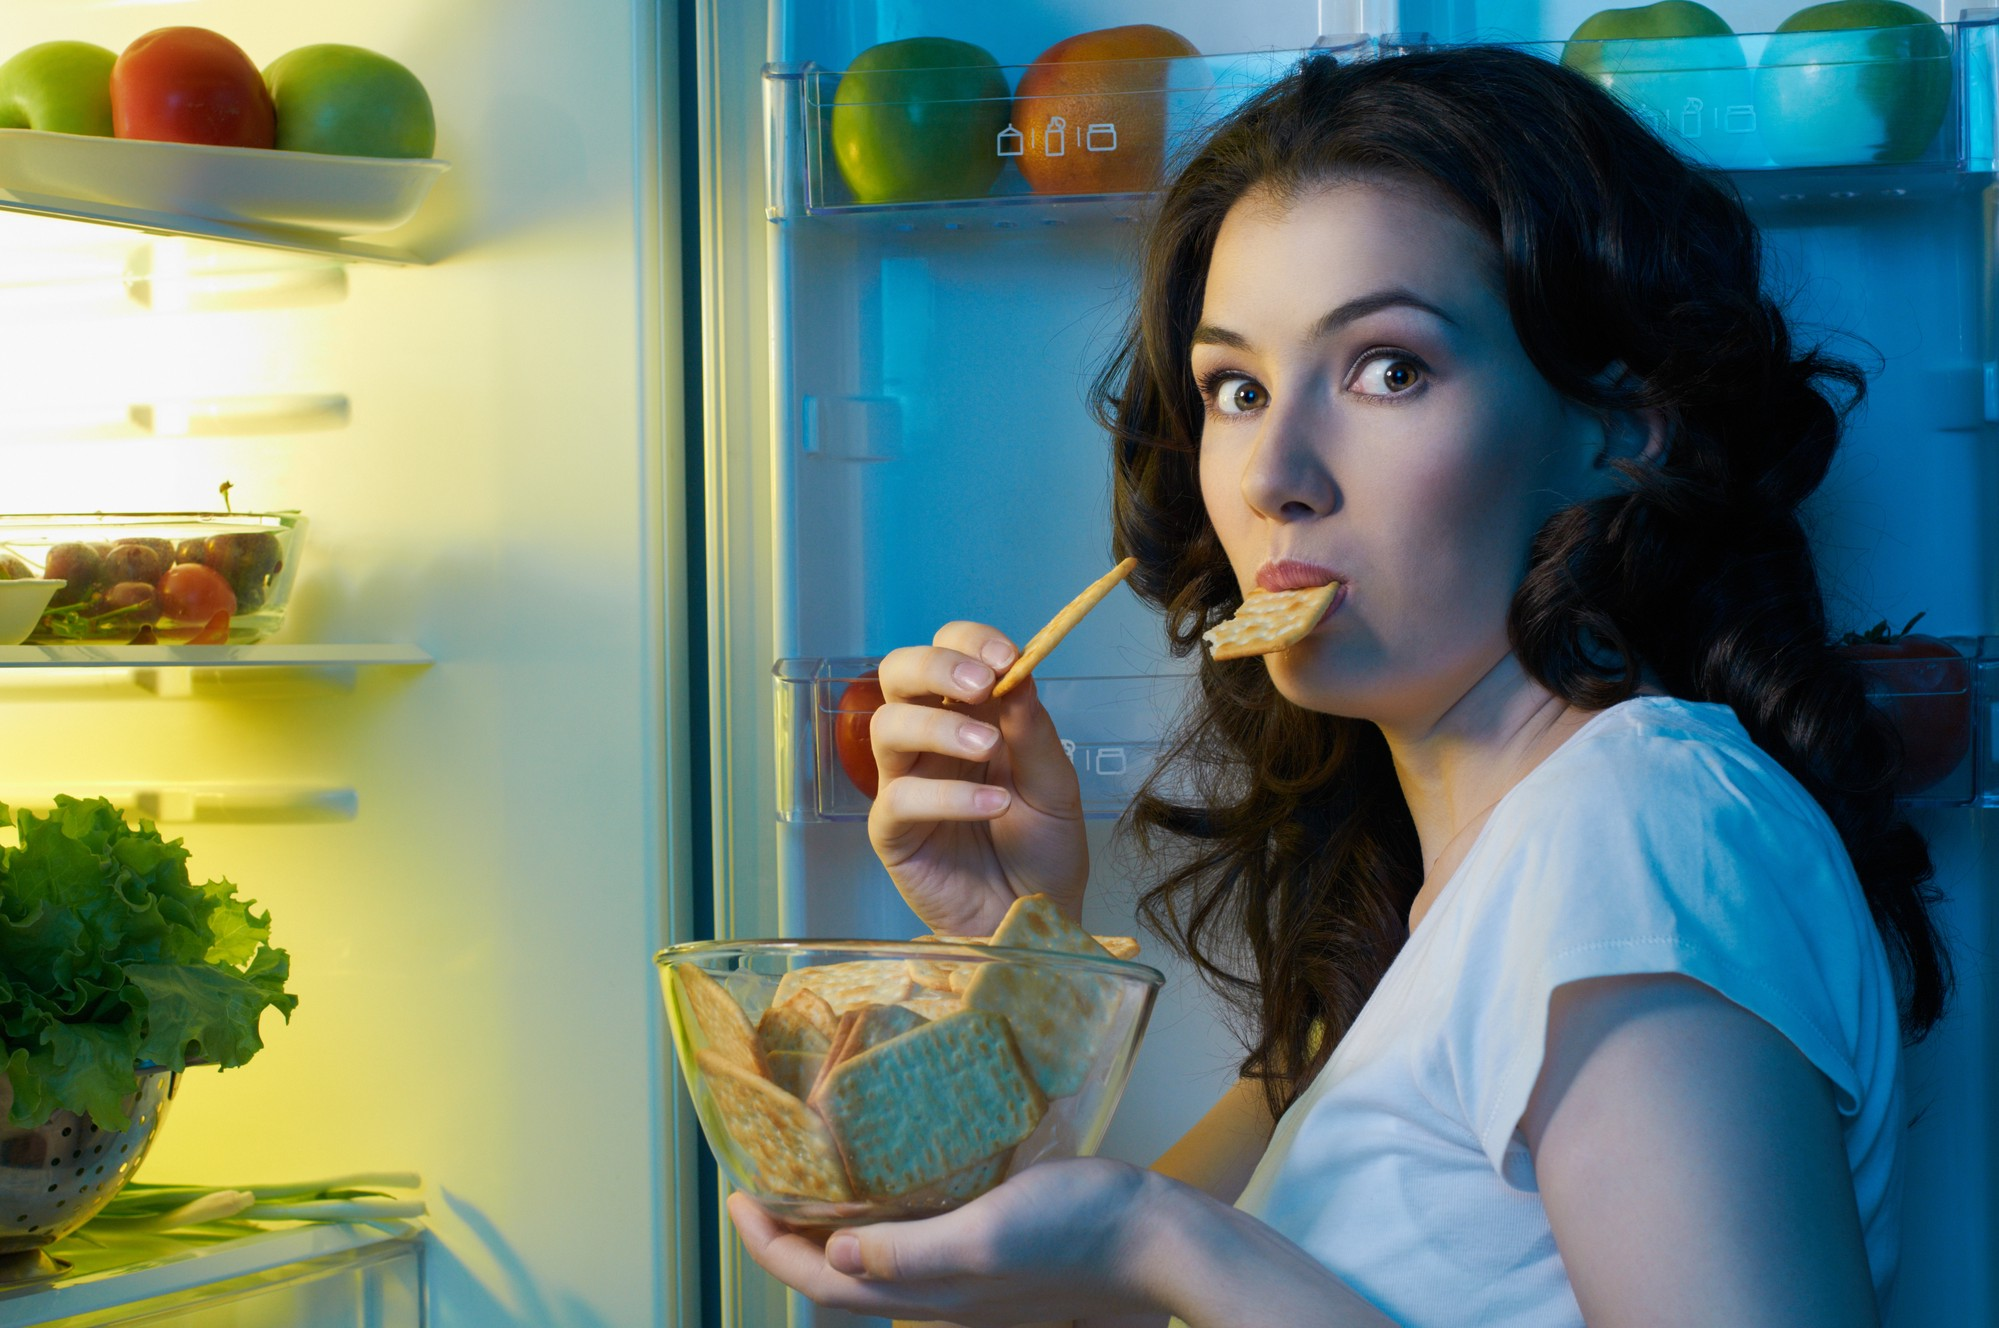 girl with long dark hair wearing white t-shirt eating food in front of refrigerator